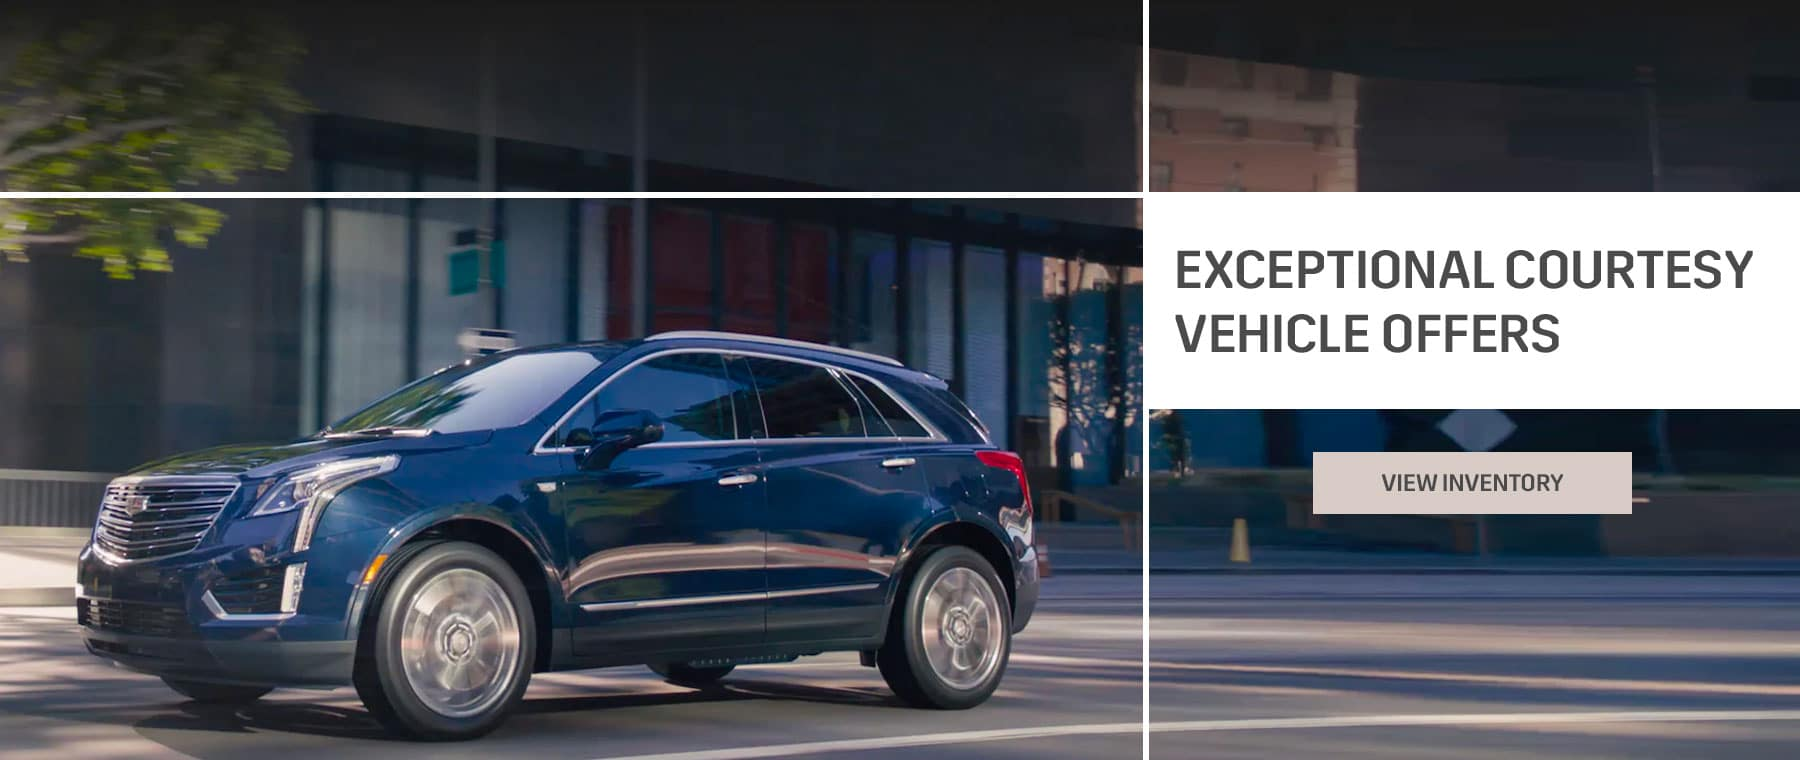 Exceptional Courtesy Vehicle Offers